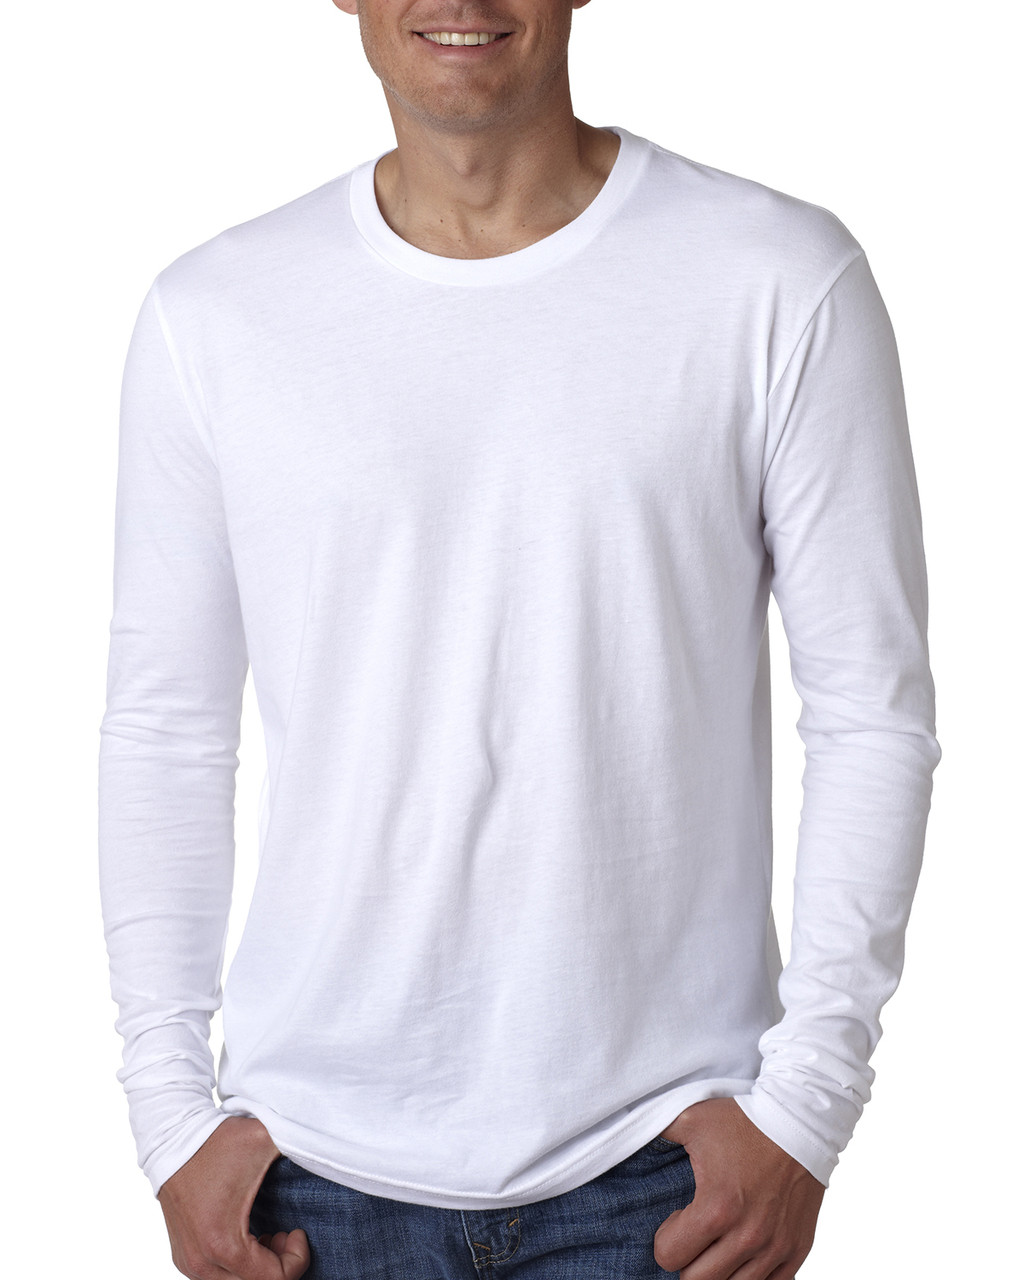 White - N3601 Next Level Men's Premium Fitted Long Sleeve Crew Tee   Blankclothing.ca